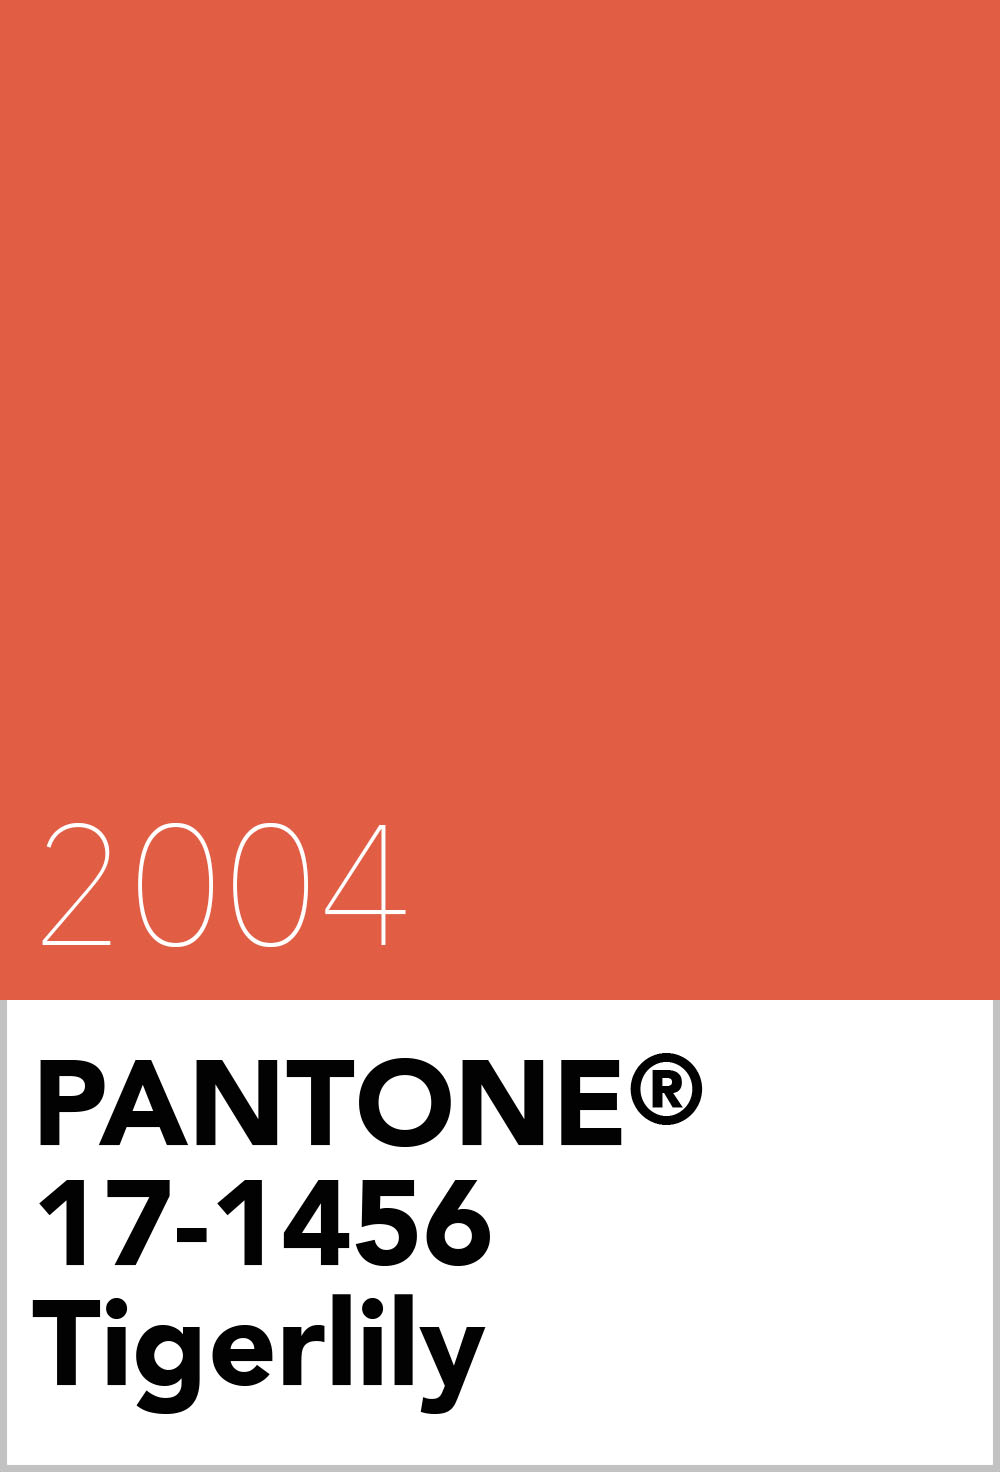 pantone colour of the year 2004